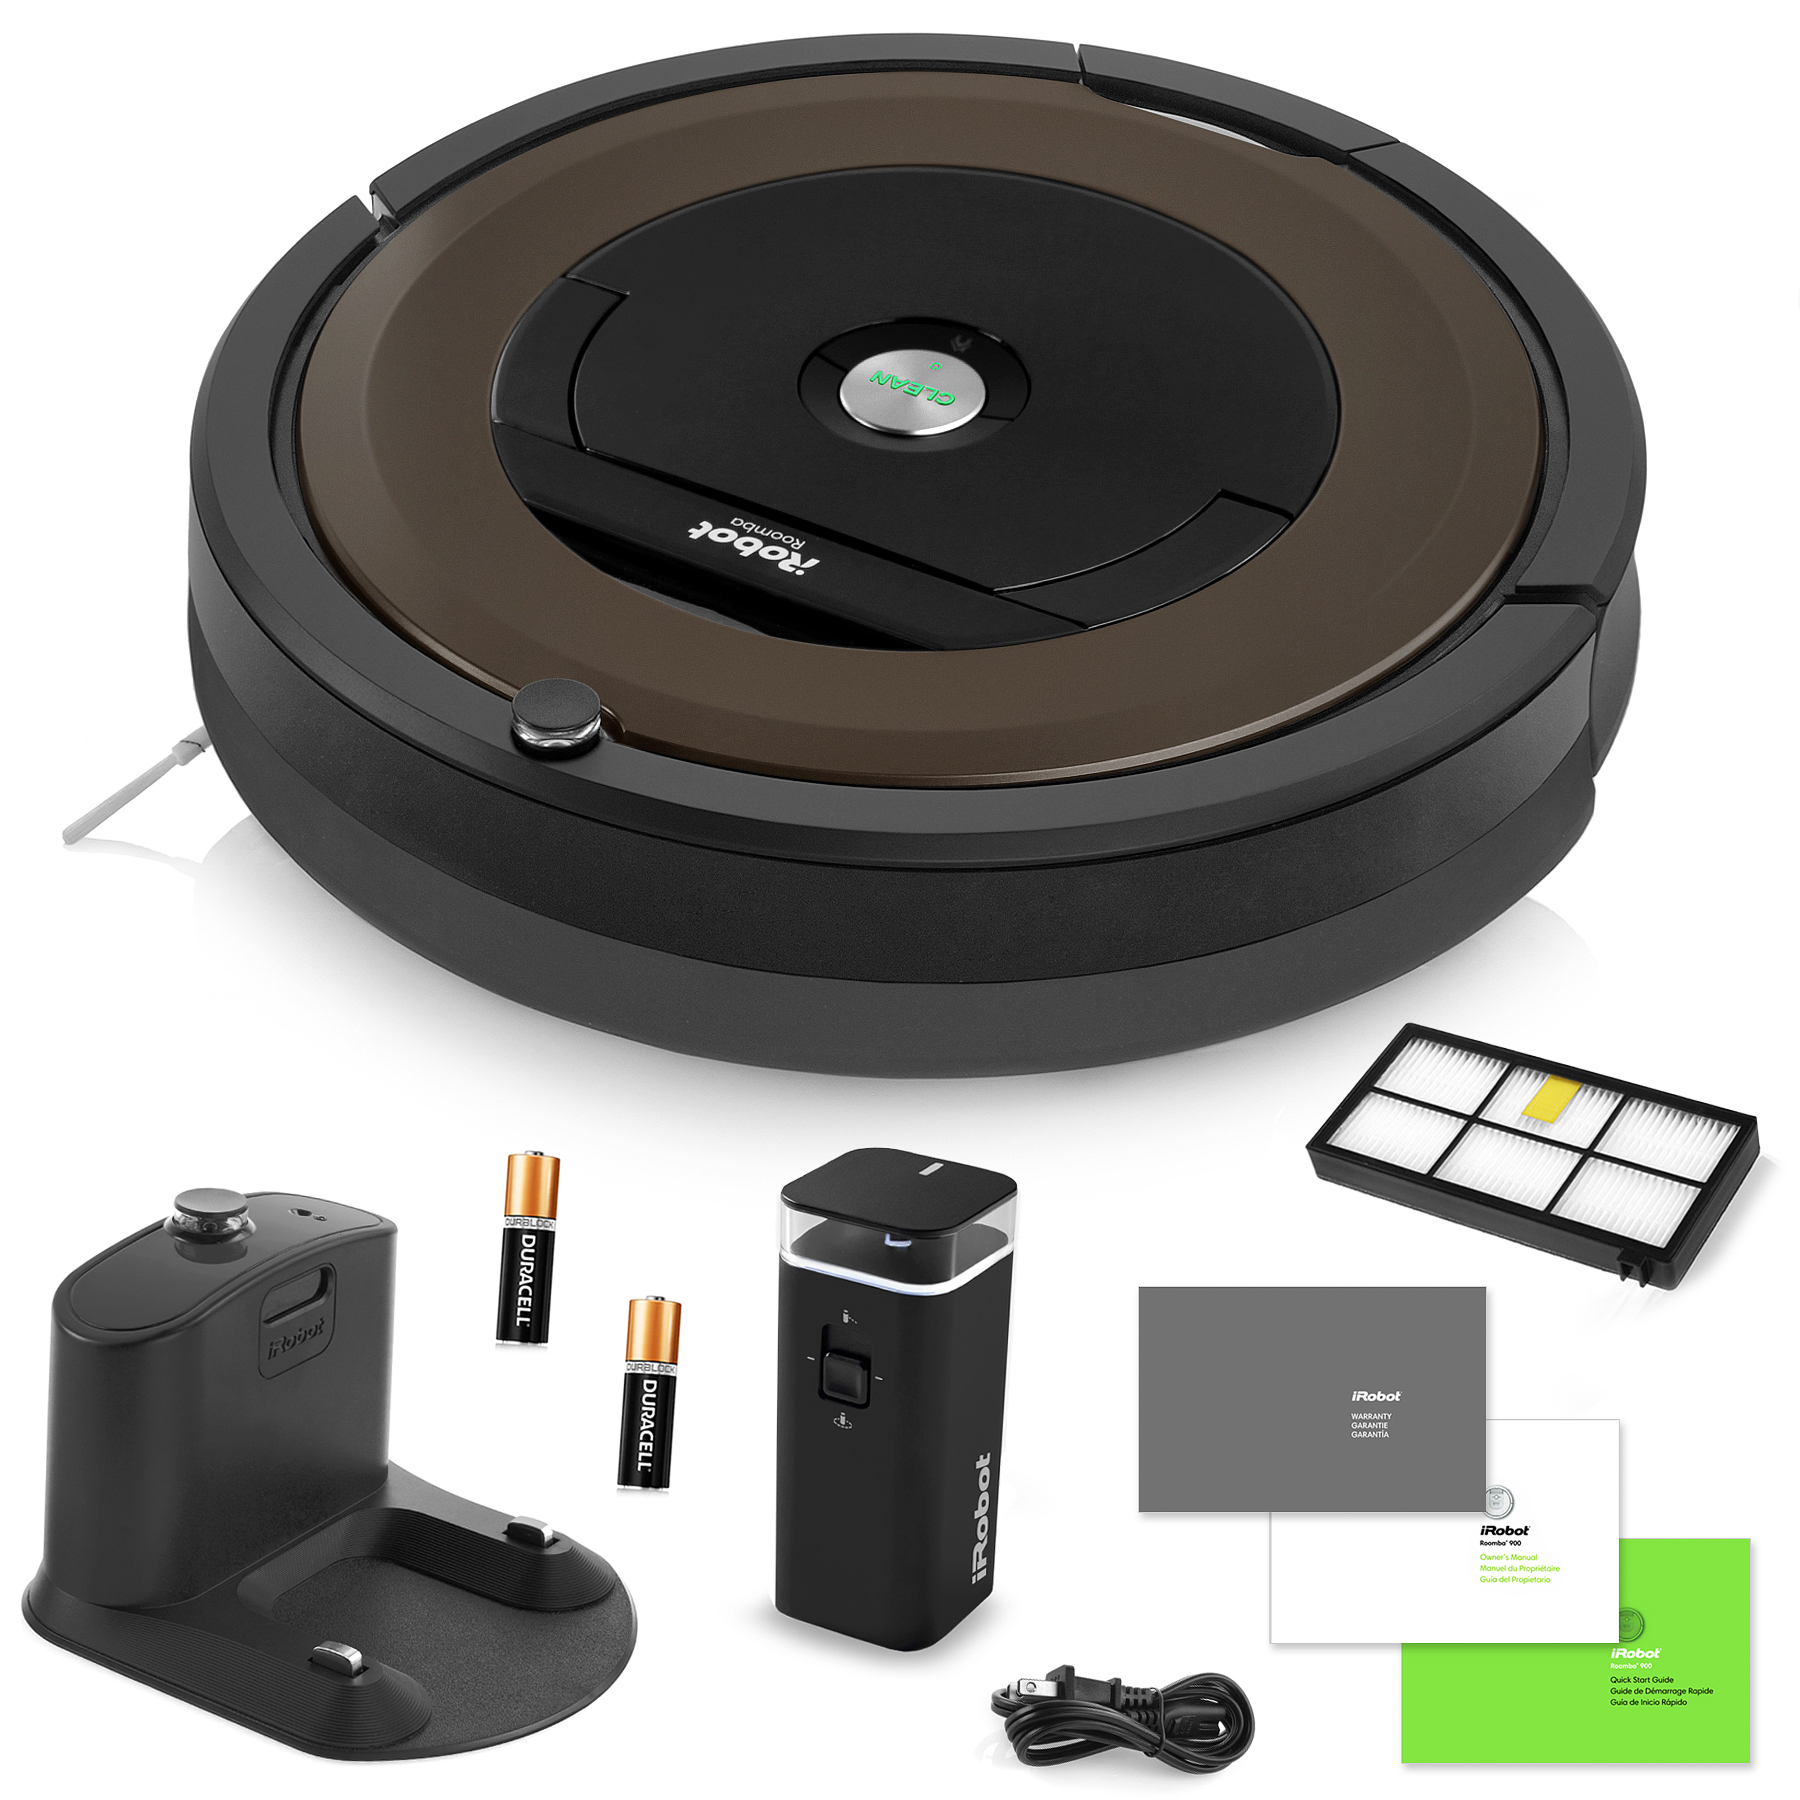 iRobot Roomba 890 Vacuum Cleaning Robot + Dual Mode Virtual Wall Barrier (With Batteries) +